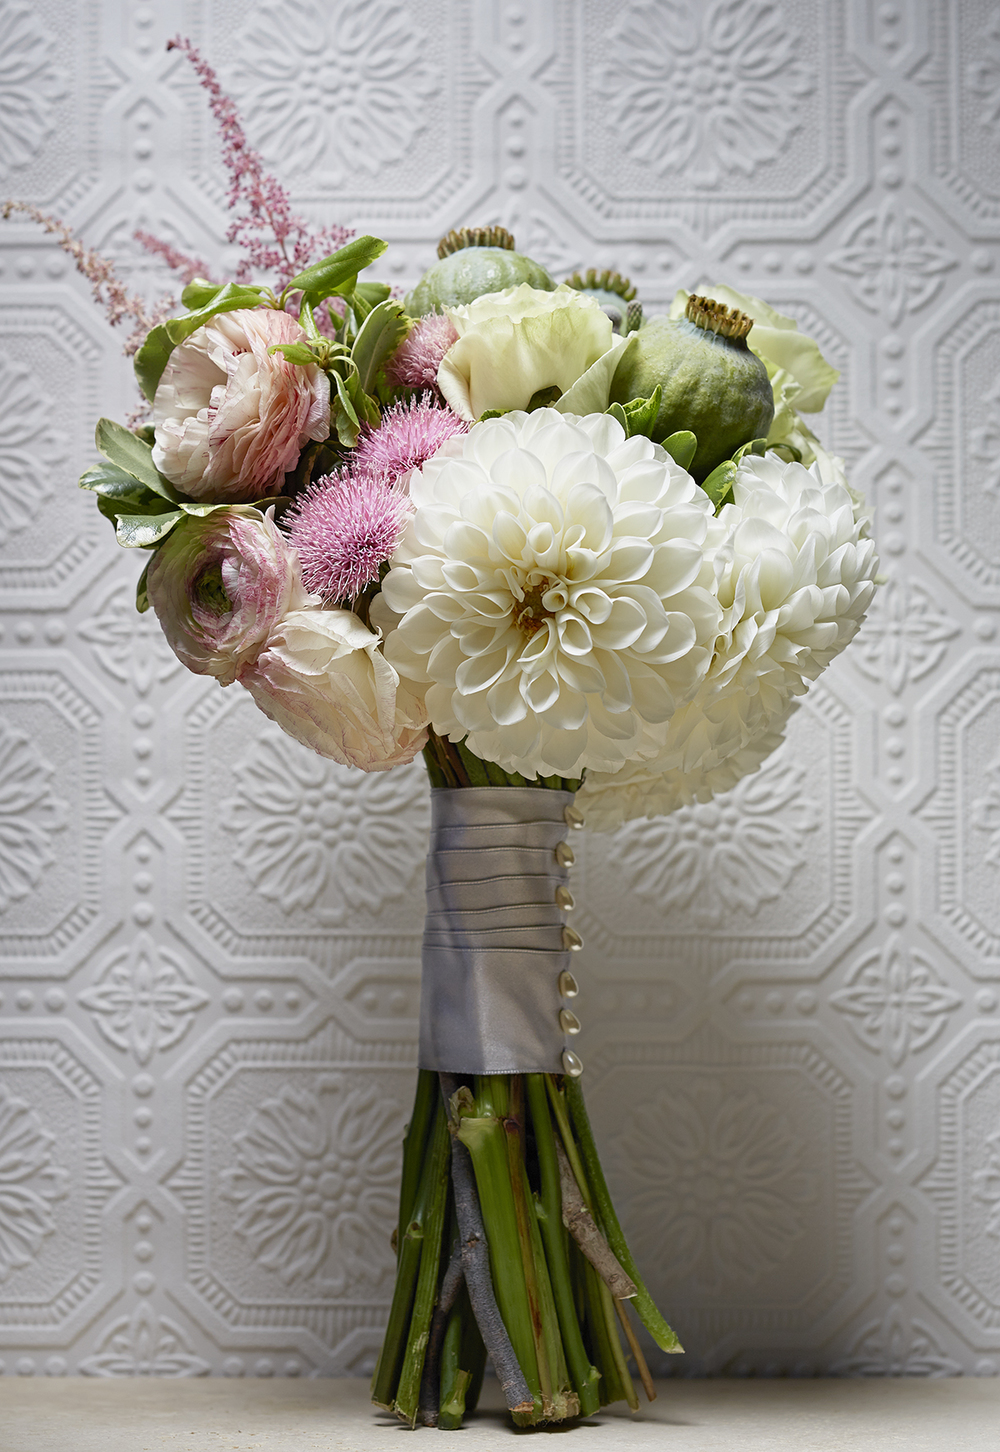 """Toronto's Best Wedding Florists.""   Weddingful Blog,  August 5, 2014."